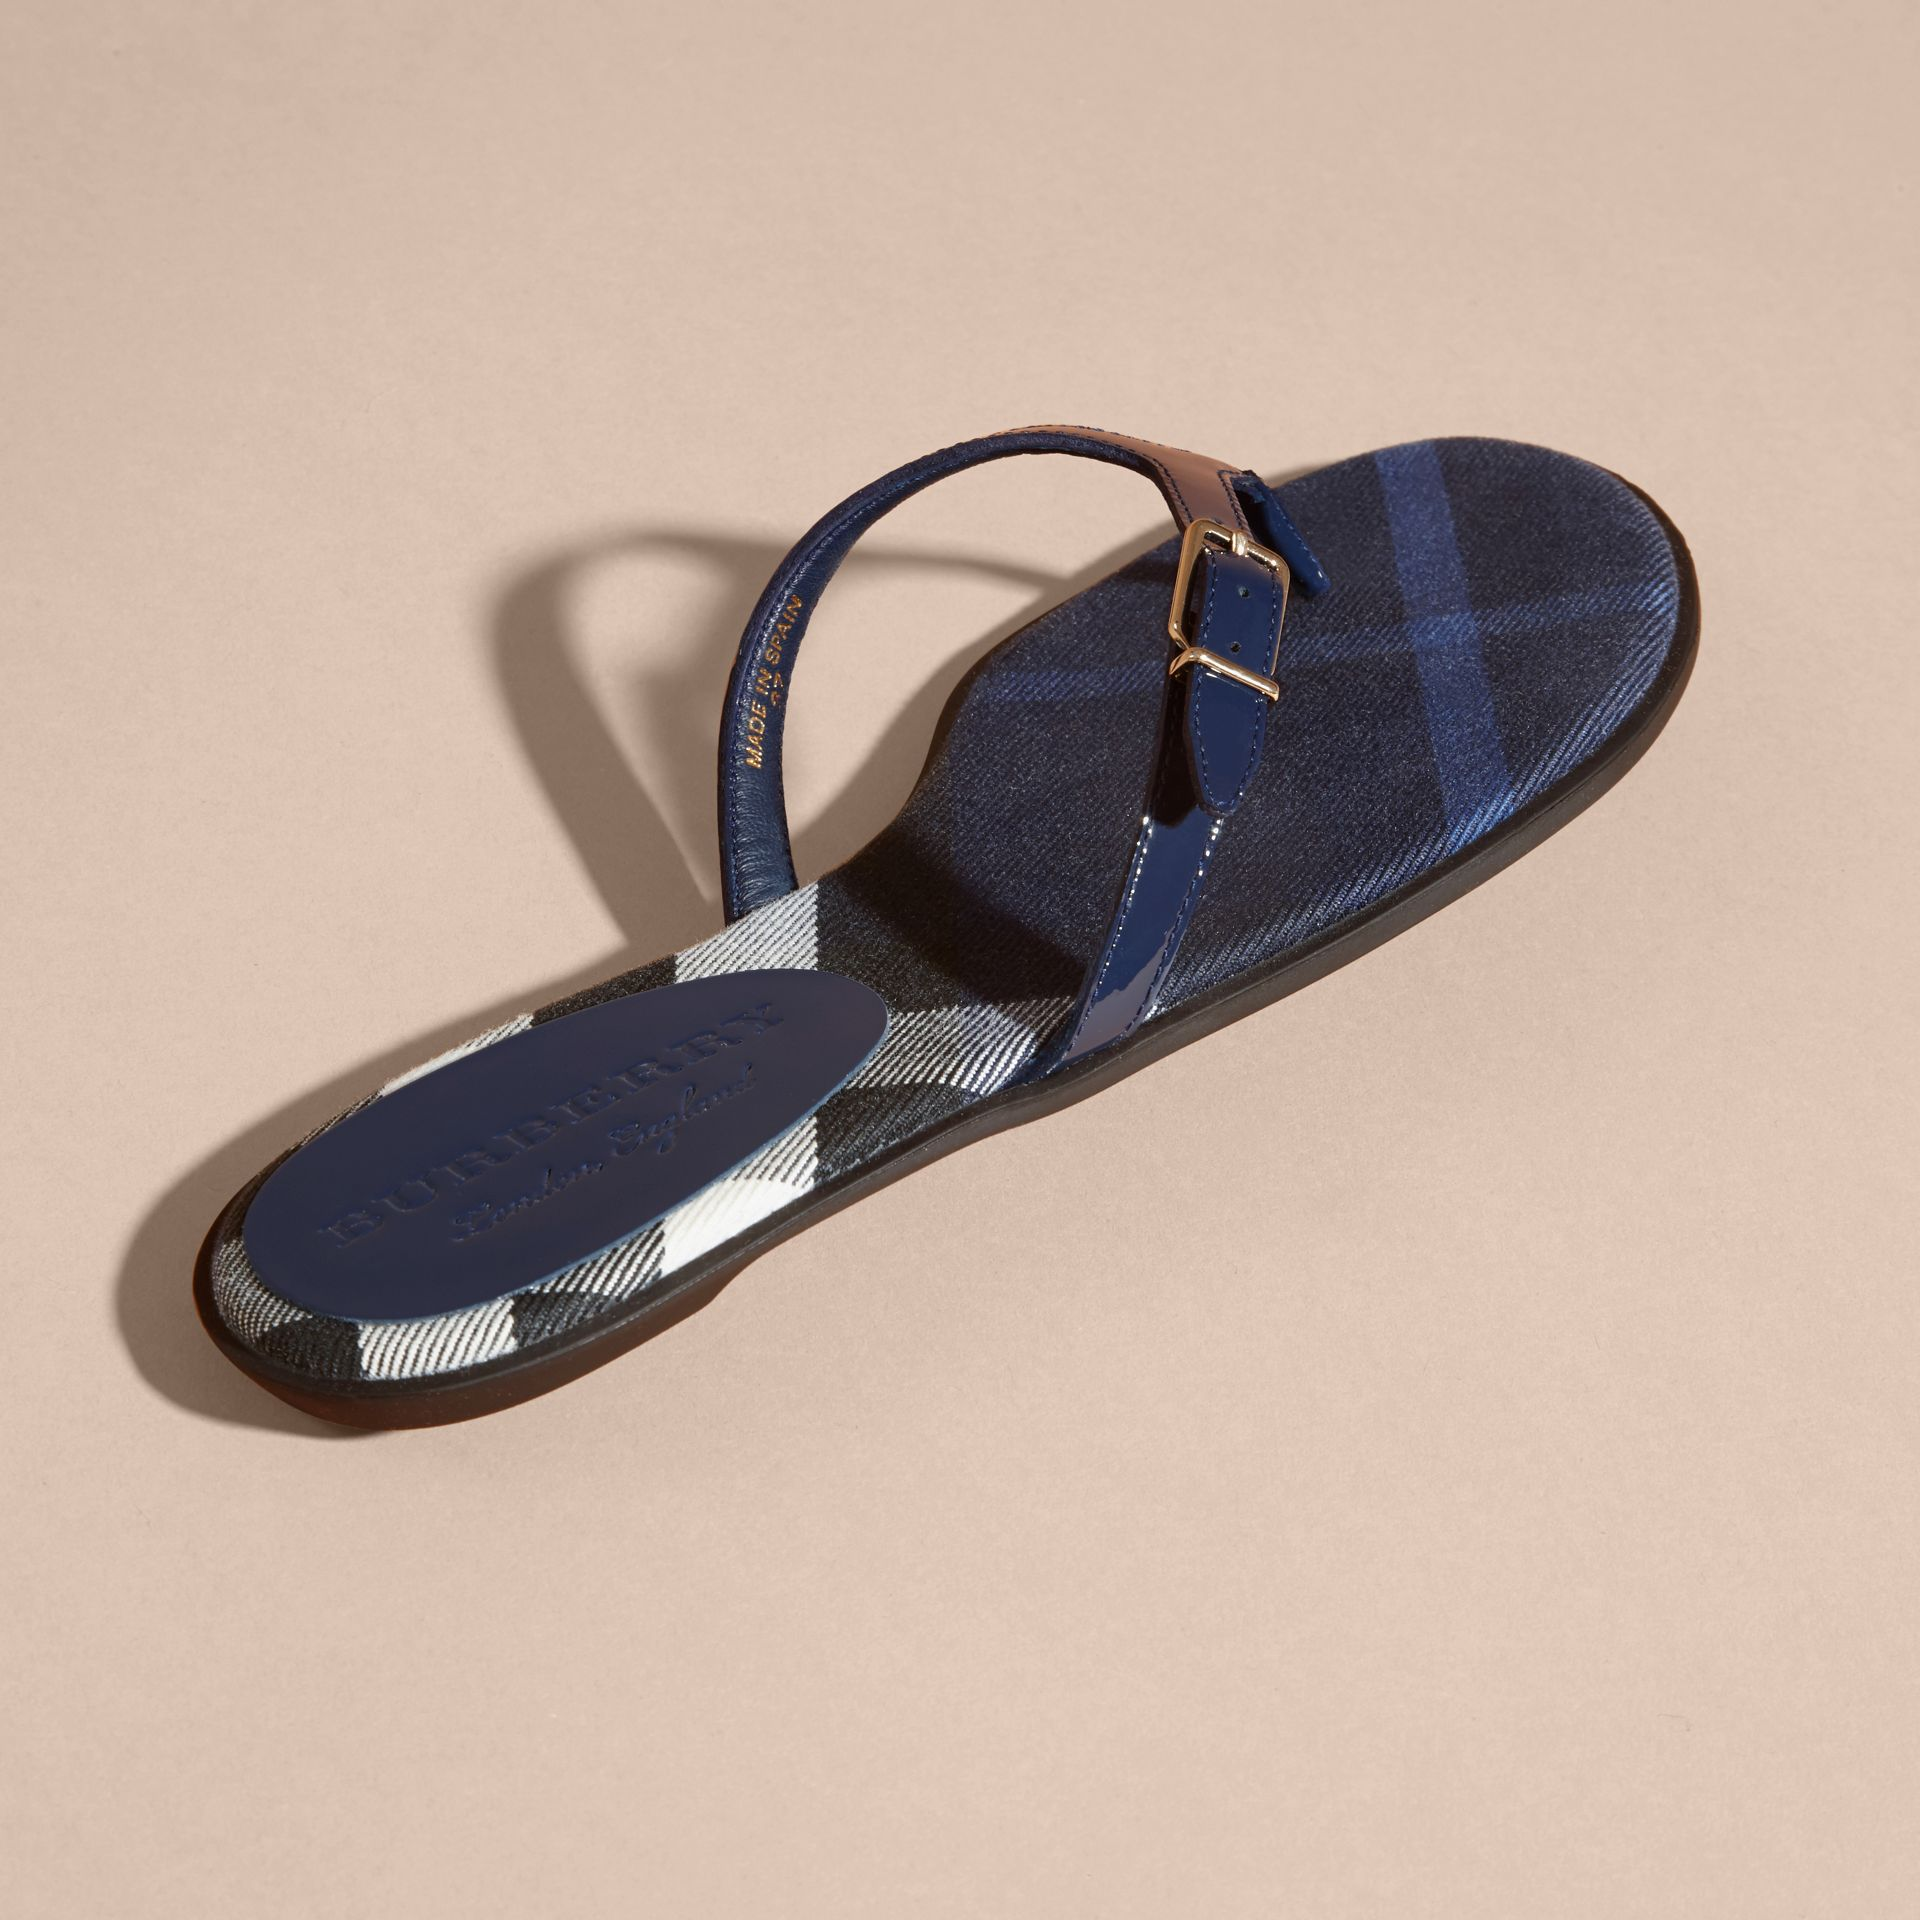 House Check and Patent Leather Sandals in Indigo Blue - Women | Burberry Singapore - gallery image 4